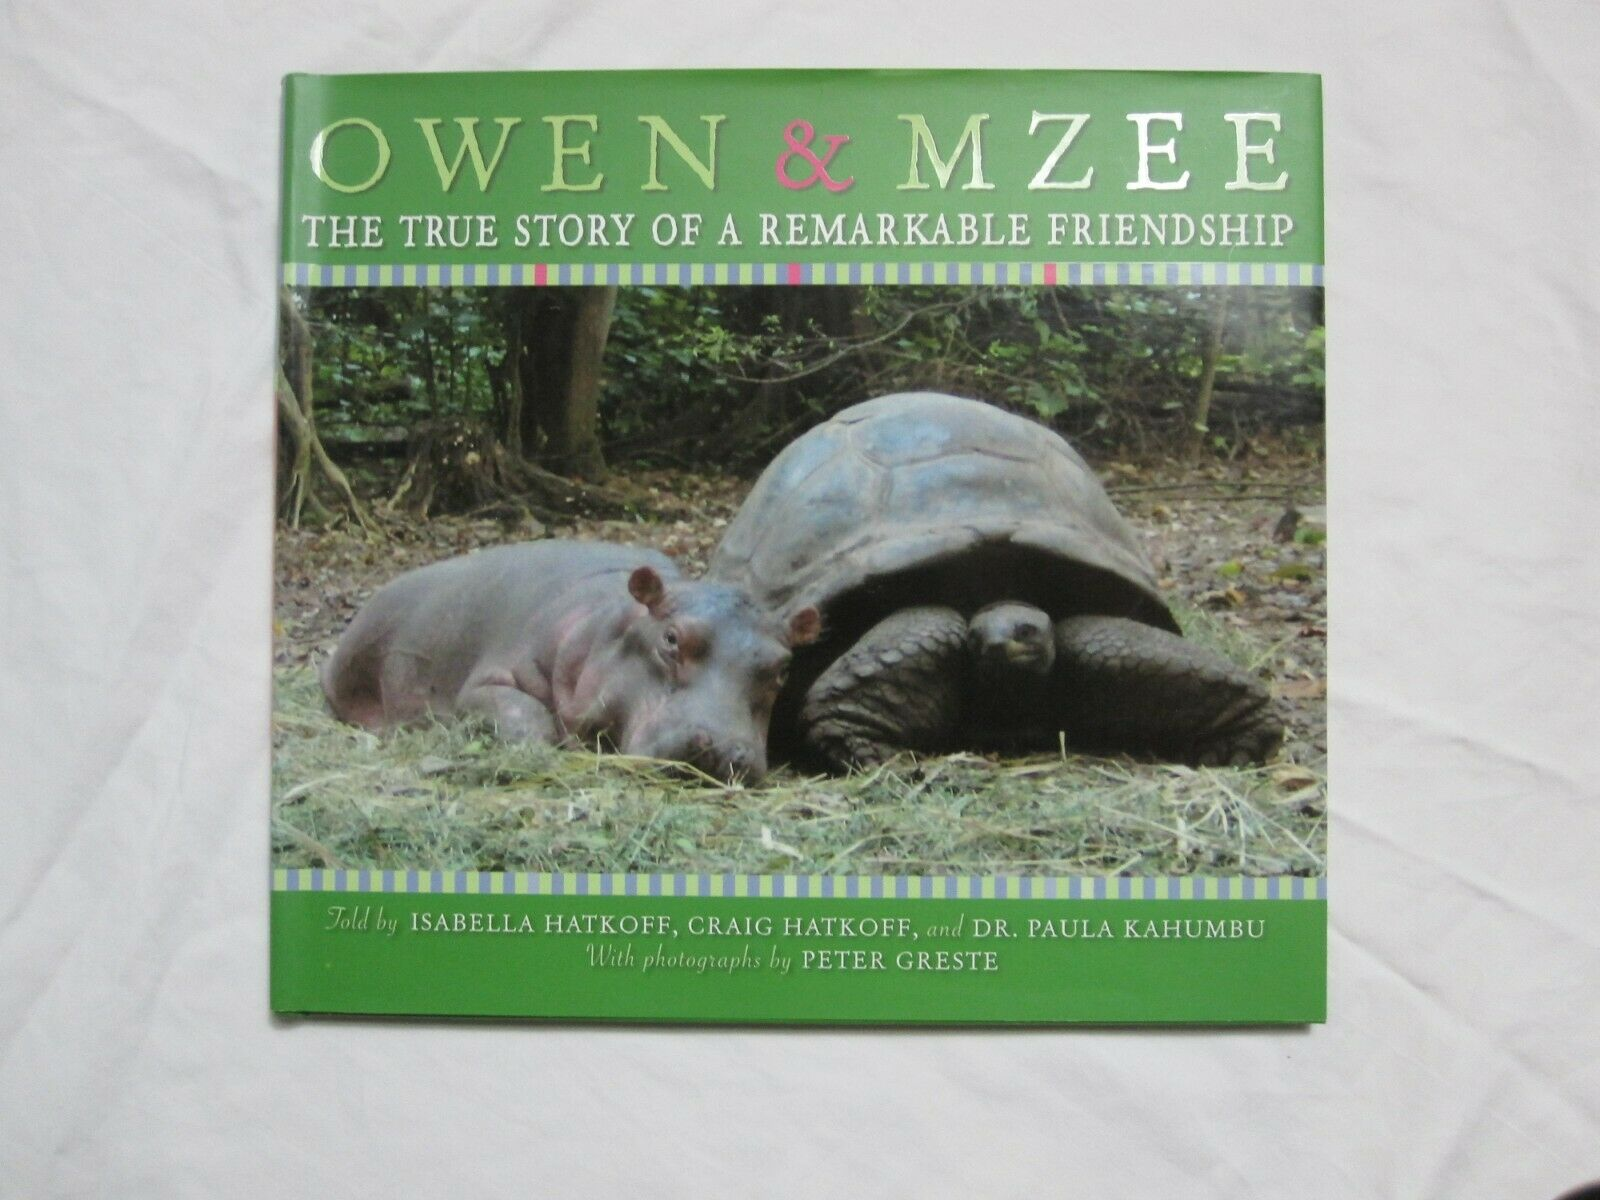 Full Set Of Owen And Mzee Hardcover Books 2 Sweet Stories Of 2 Unlikely Friends - $20.00